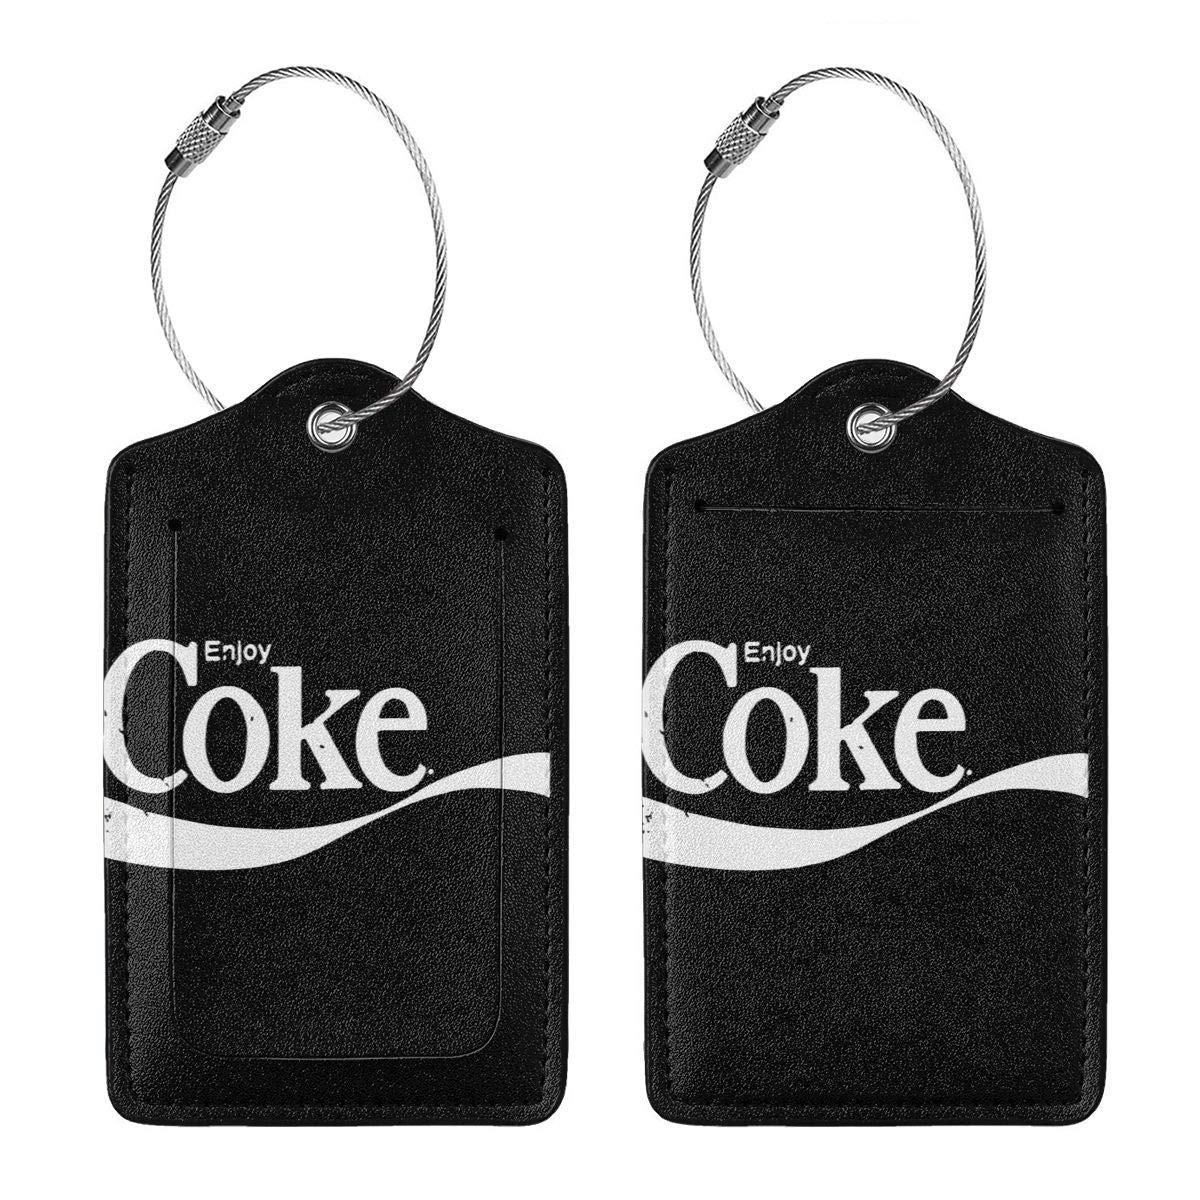 Enjoy Coke Leather Luggage Tag Travel ID Label For Baggage Suitcase